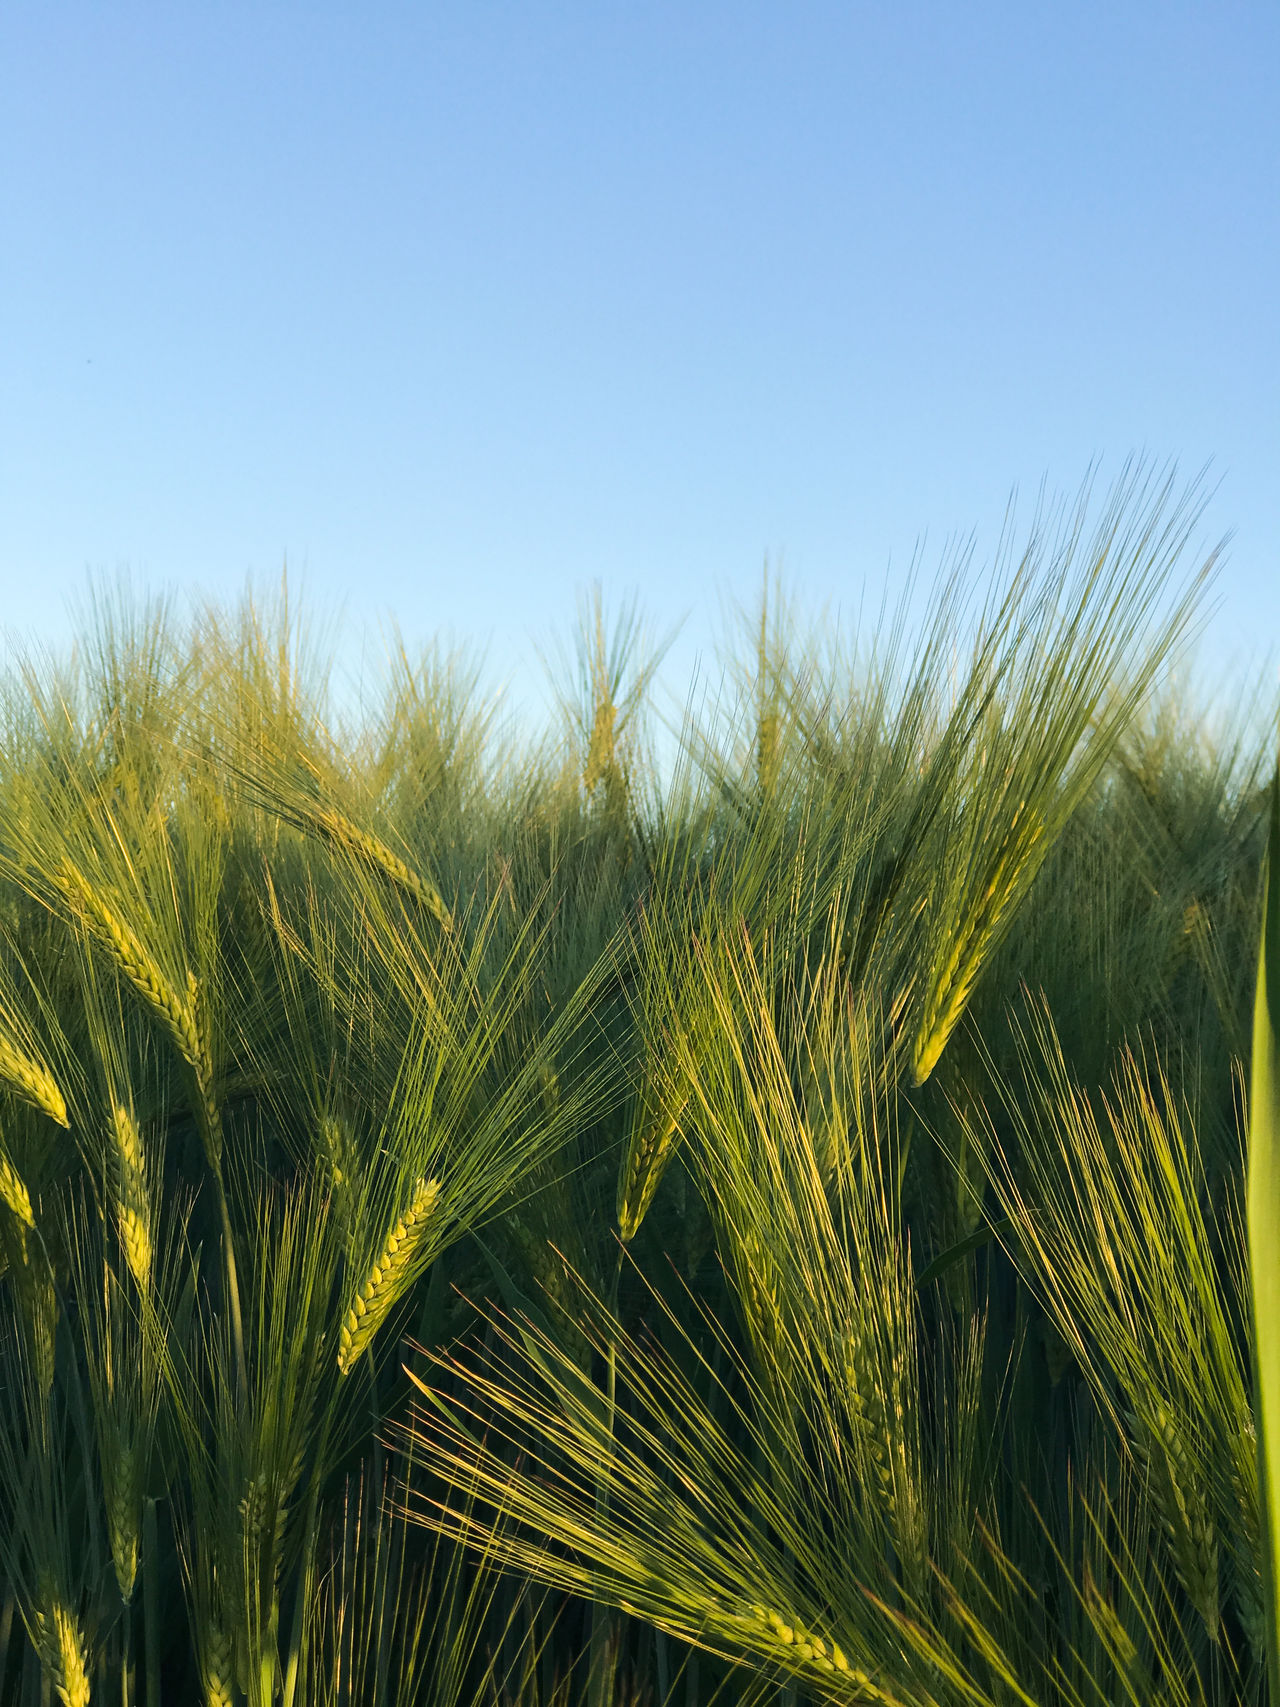 Agriculture Beauty In Nature Blue Cereal Plant Clear Sky Close Up Close-up Crop  Farm Field Freshness Green Color Growth Minimal Minimalism Minimalobsession Nature Outdoors Plant Rural Scene Sky The Great Outdoors - 2017 EyeEm Awards Food Minimalist Photography  Nature_collection iPhone crop